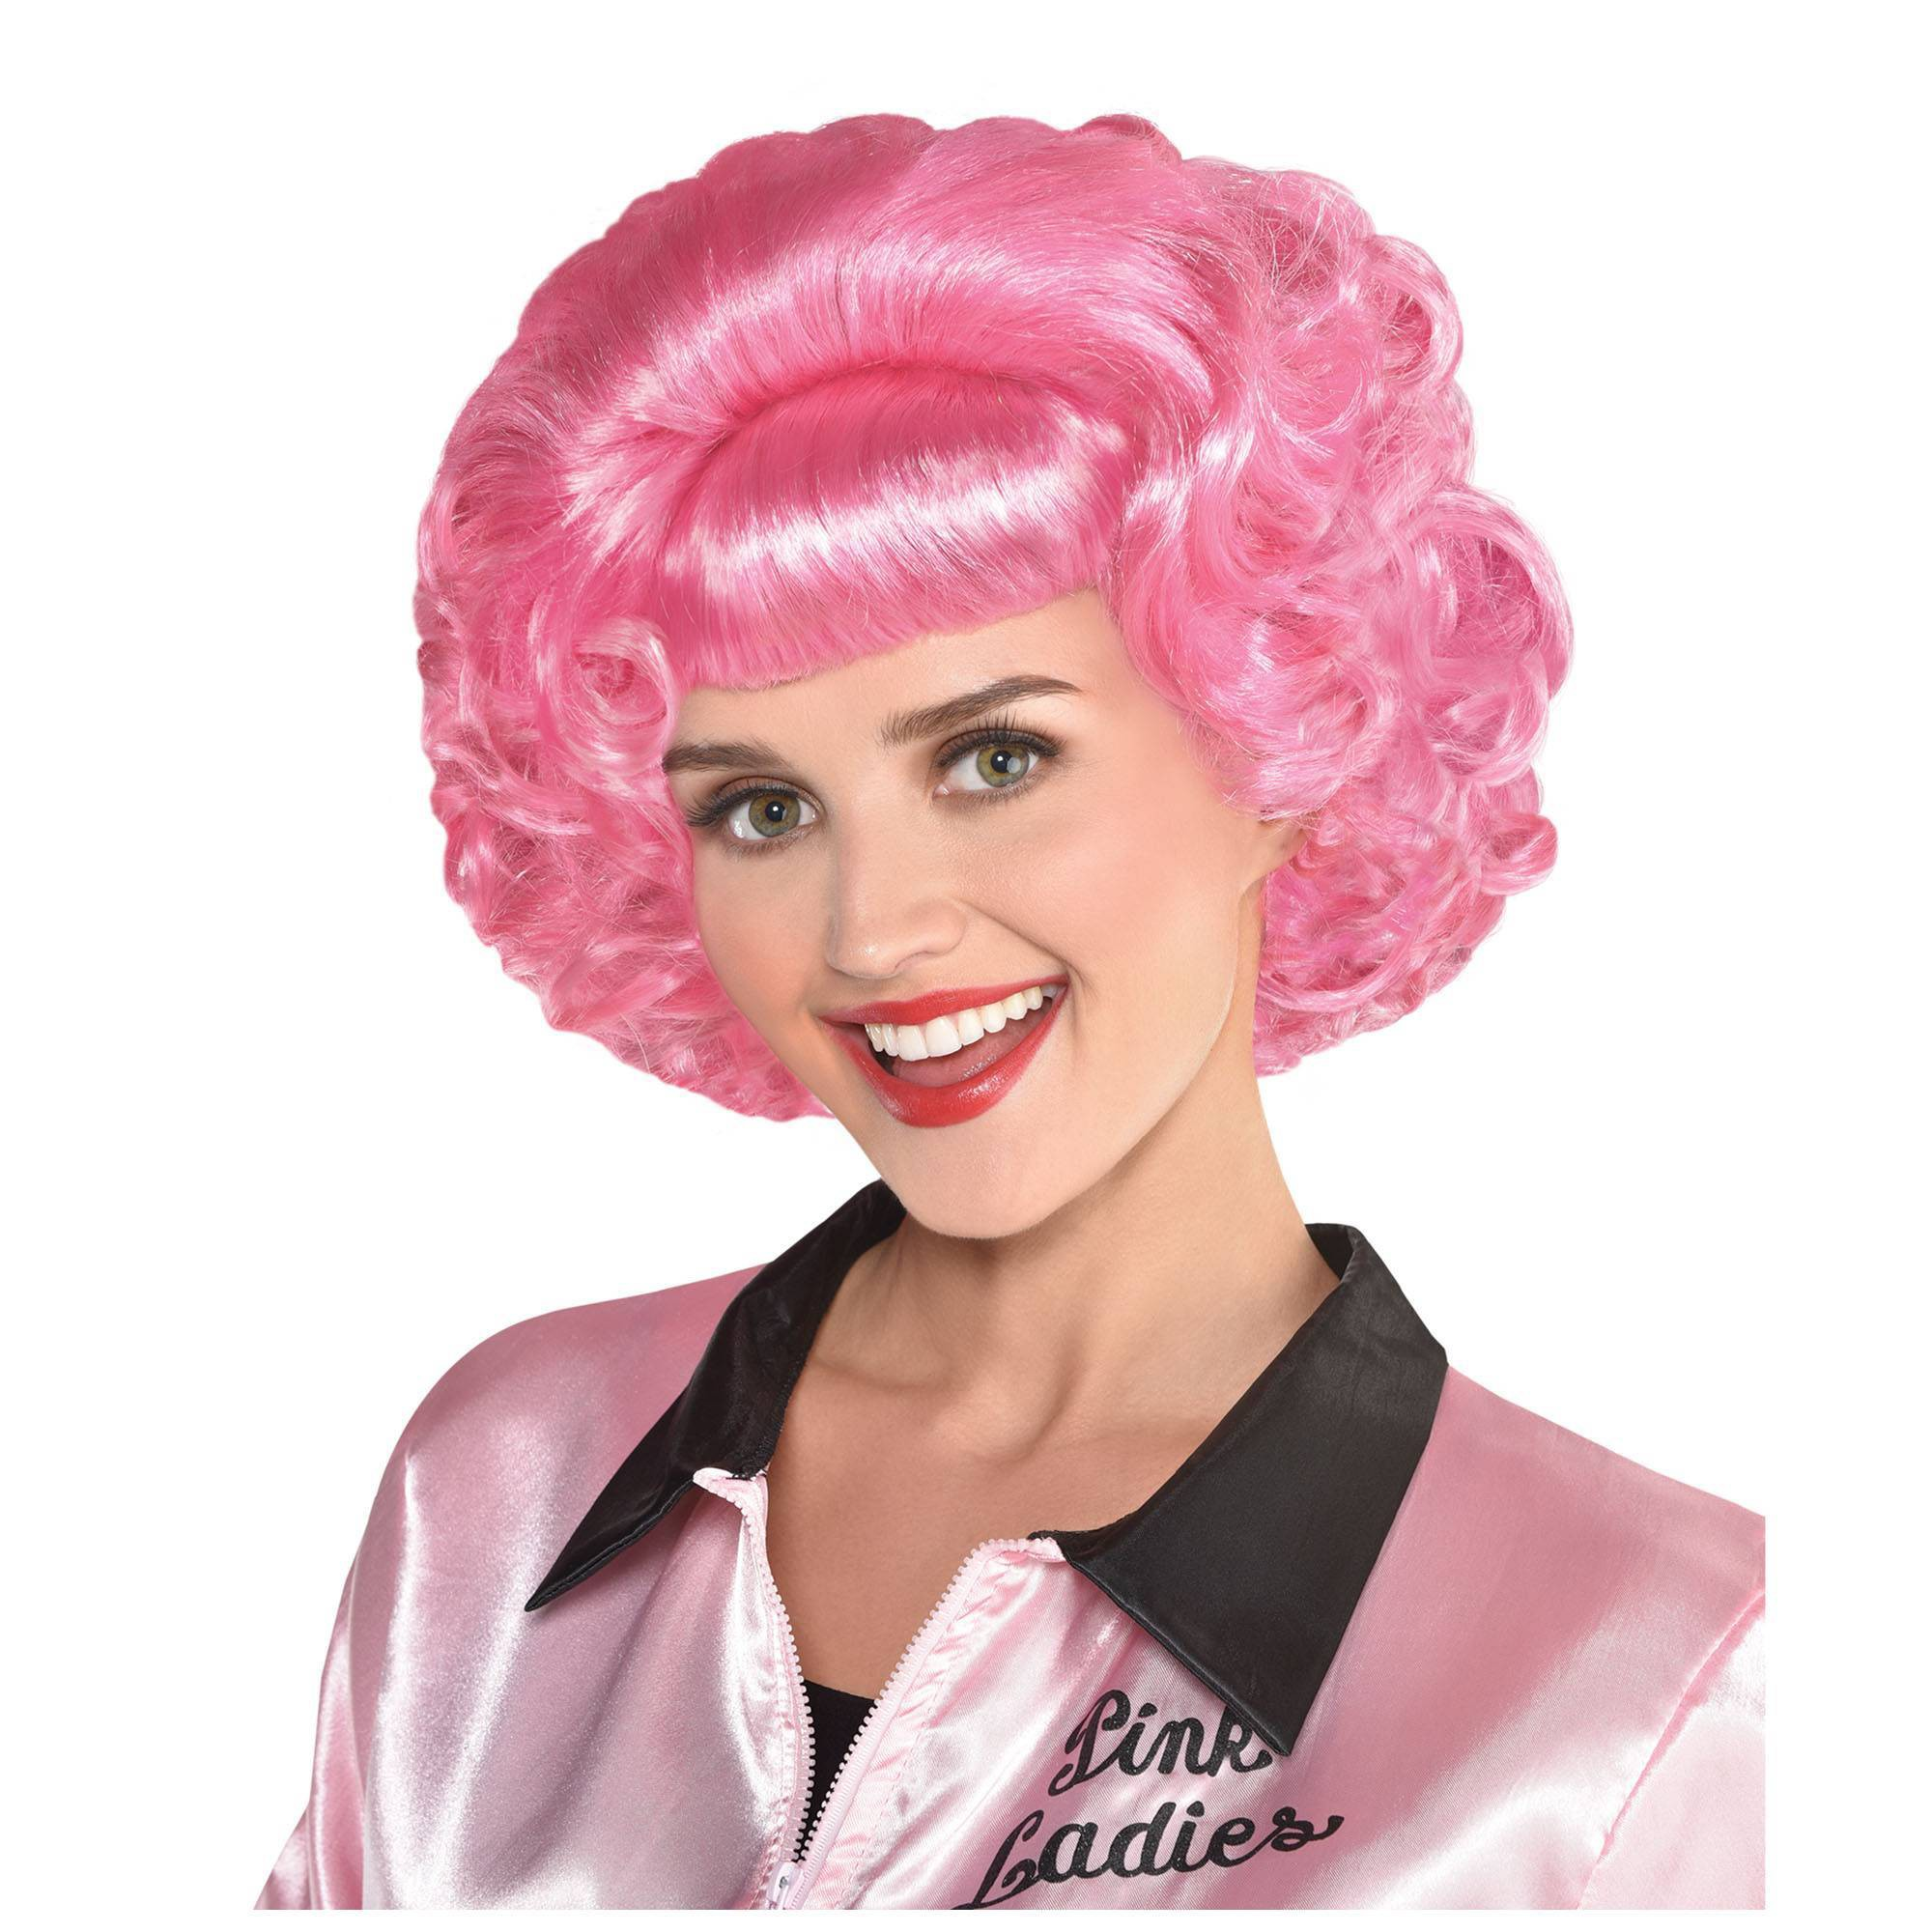 Grease Frenchy Pink Halloween Costume Wig Pink Halloween Costumes Halloween Costume Wigs Pink Halloween